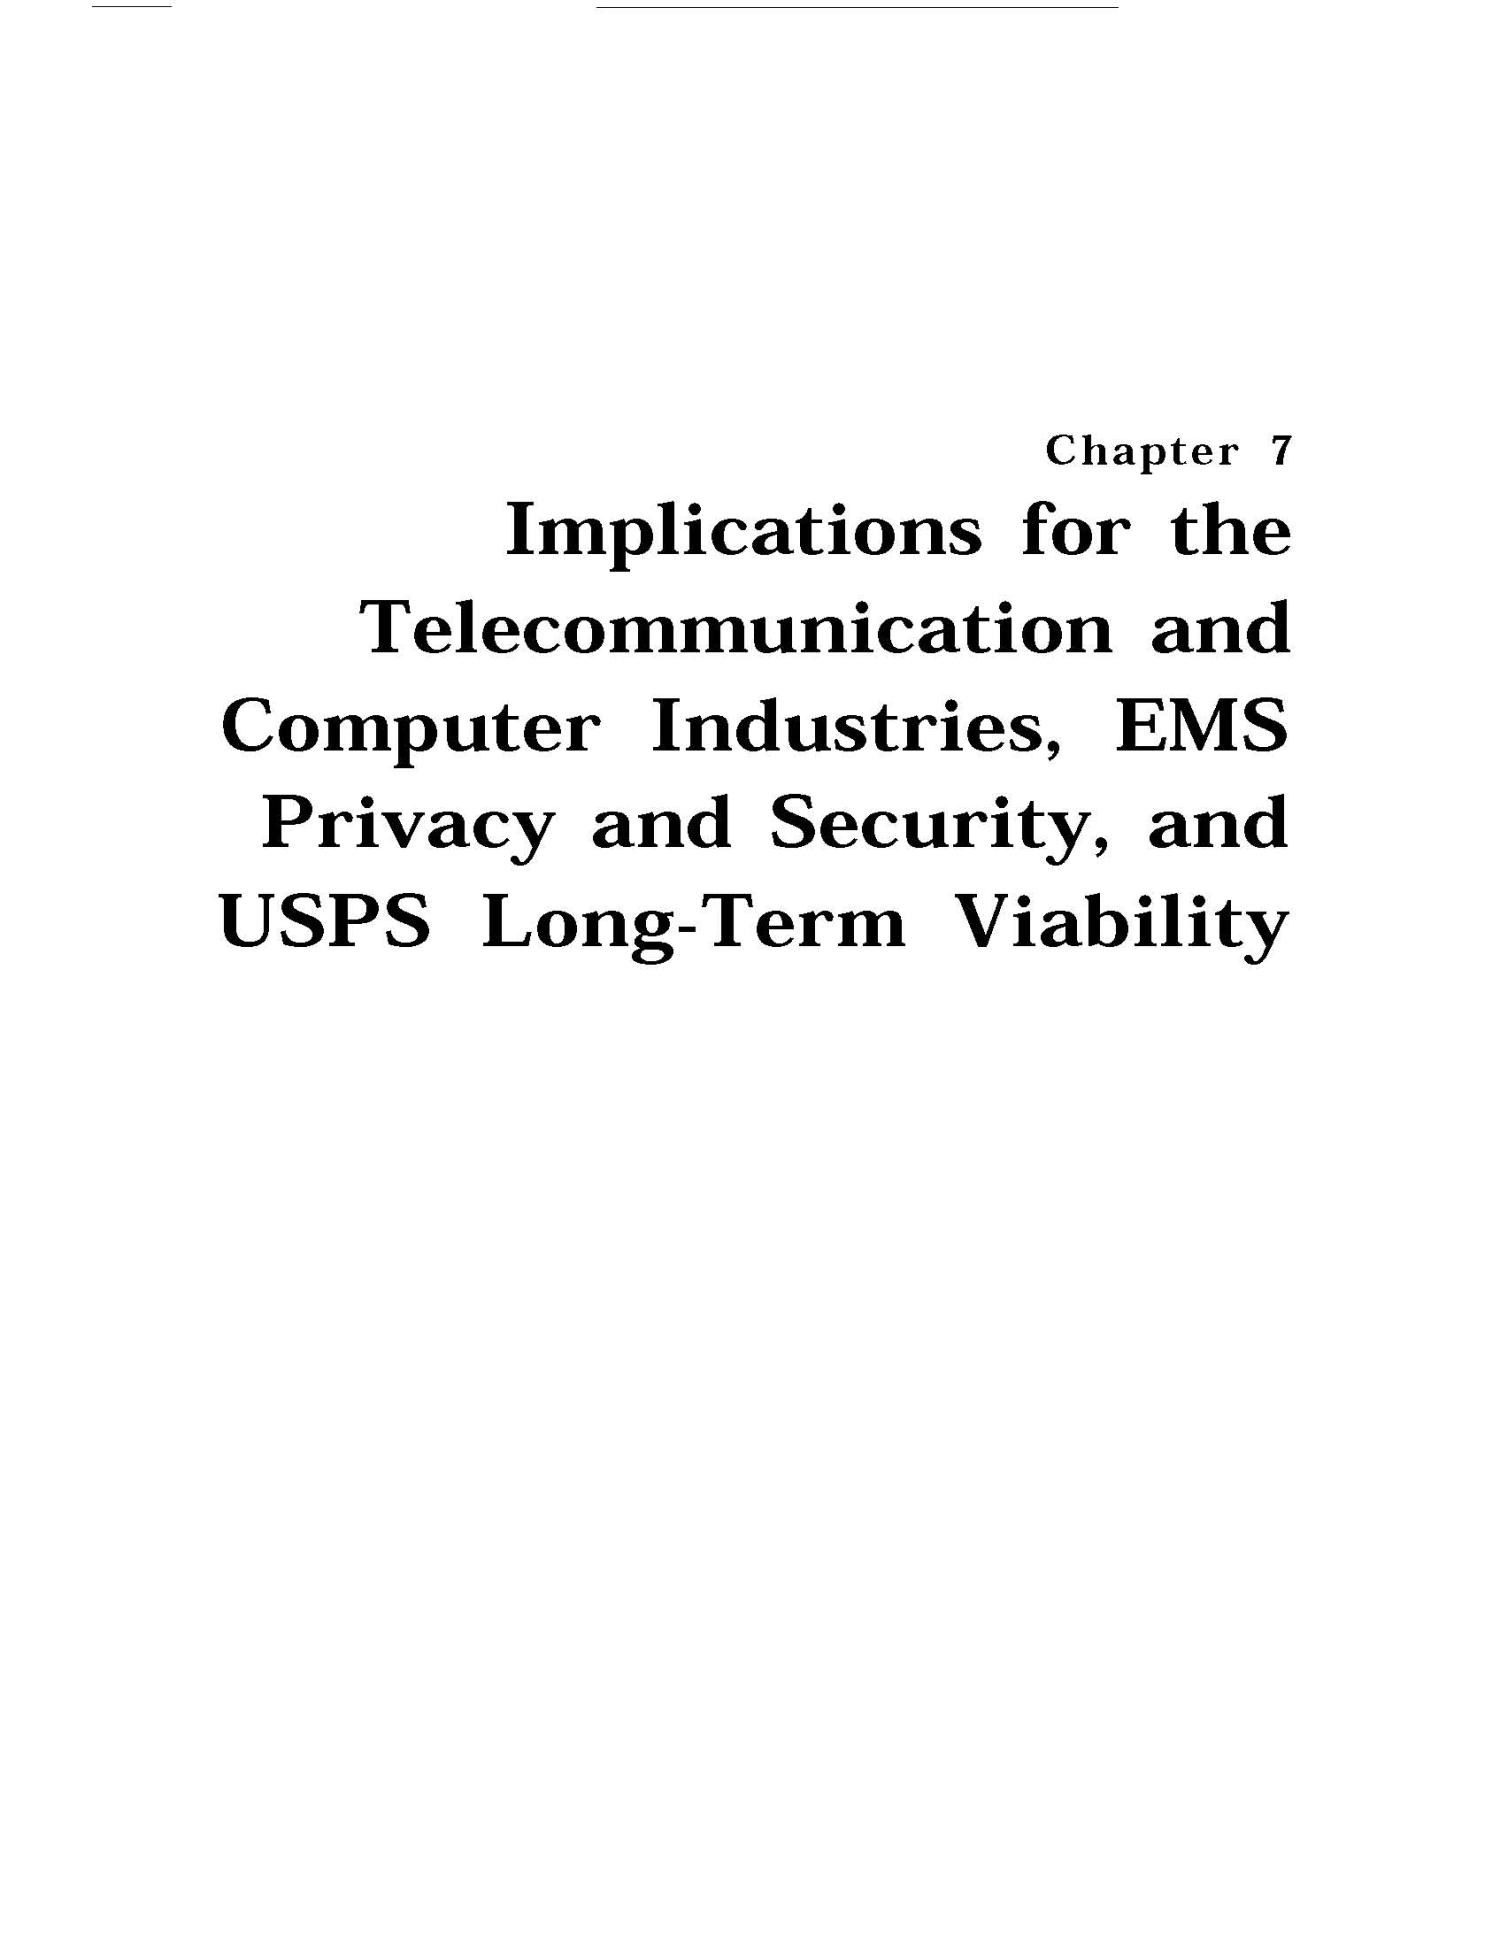 Implications of Electronic Mail and Message Systems for the U.S. Postal Service                                                                                                      71